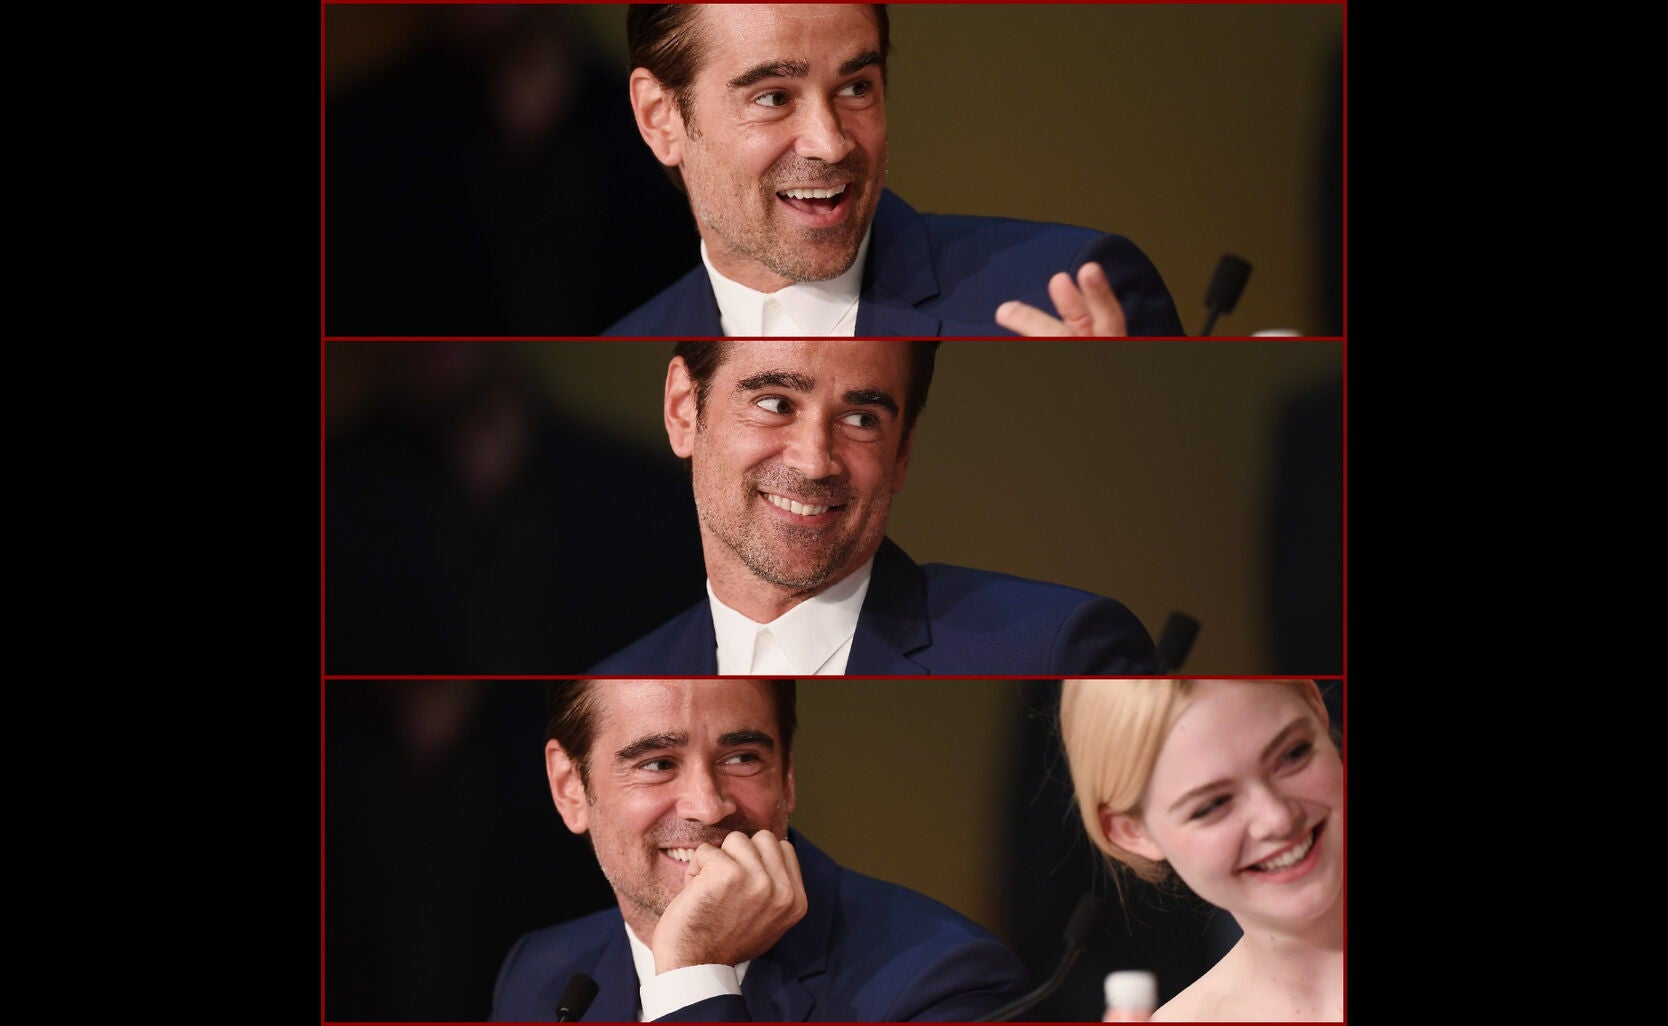 Colin Farrell in Cannes 2017